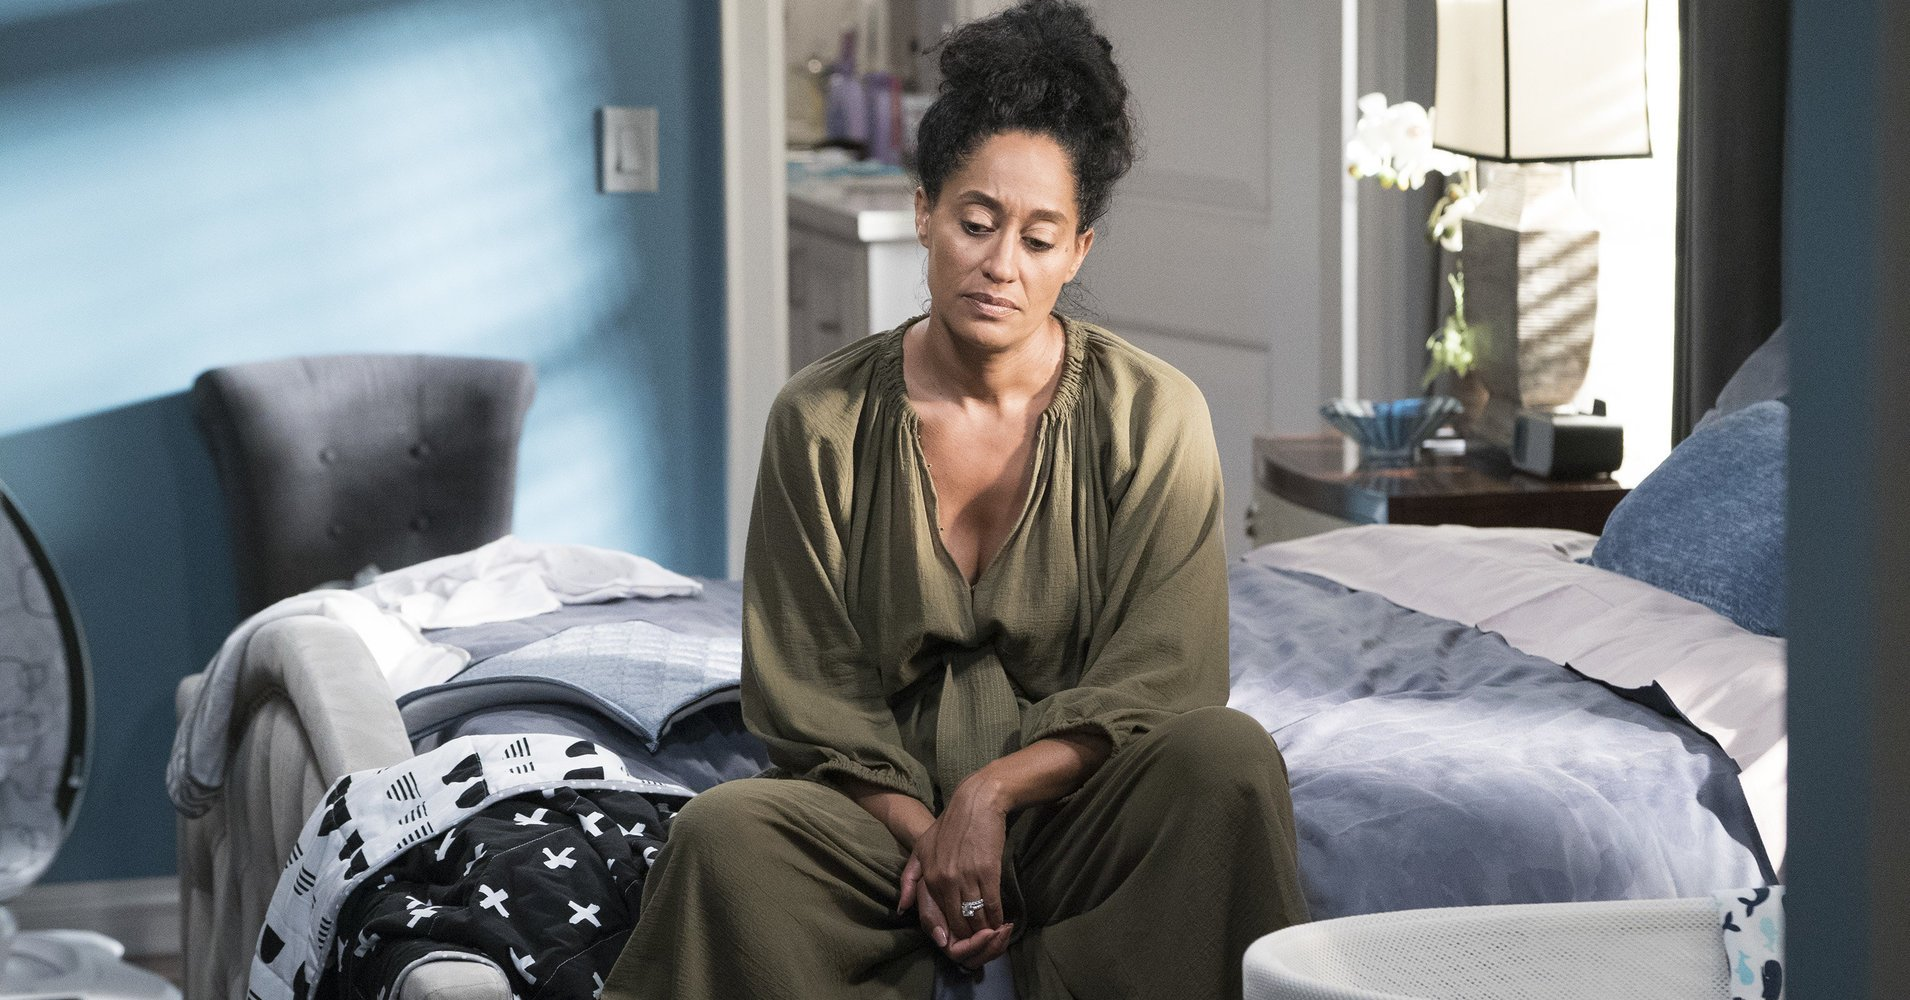 'Black-ish' addressed postpartum depression head-on https://t.co/8oAq3IqjEf https://t.co/DGRujAGjlK